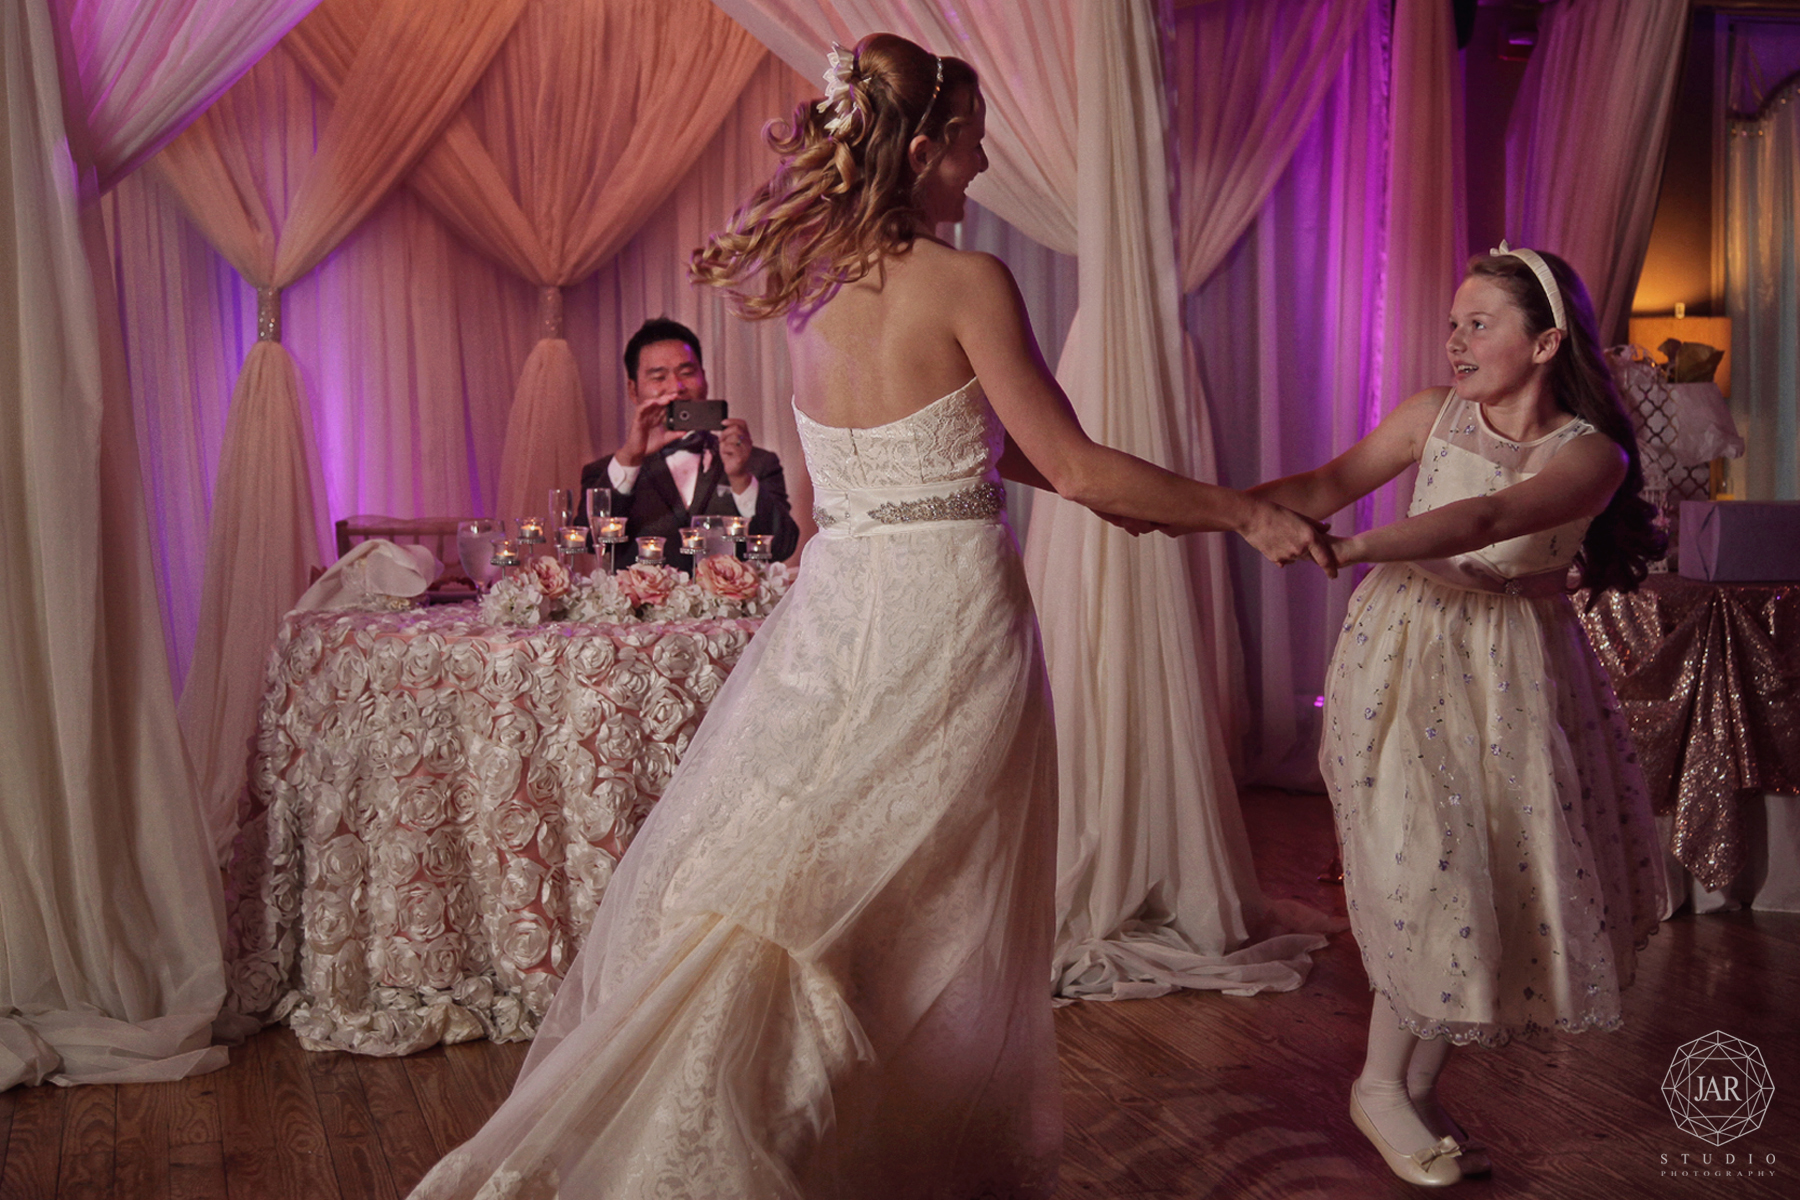 21-bride-daughter-dancing-fun-reception-jarstudio-wedding.JPG